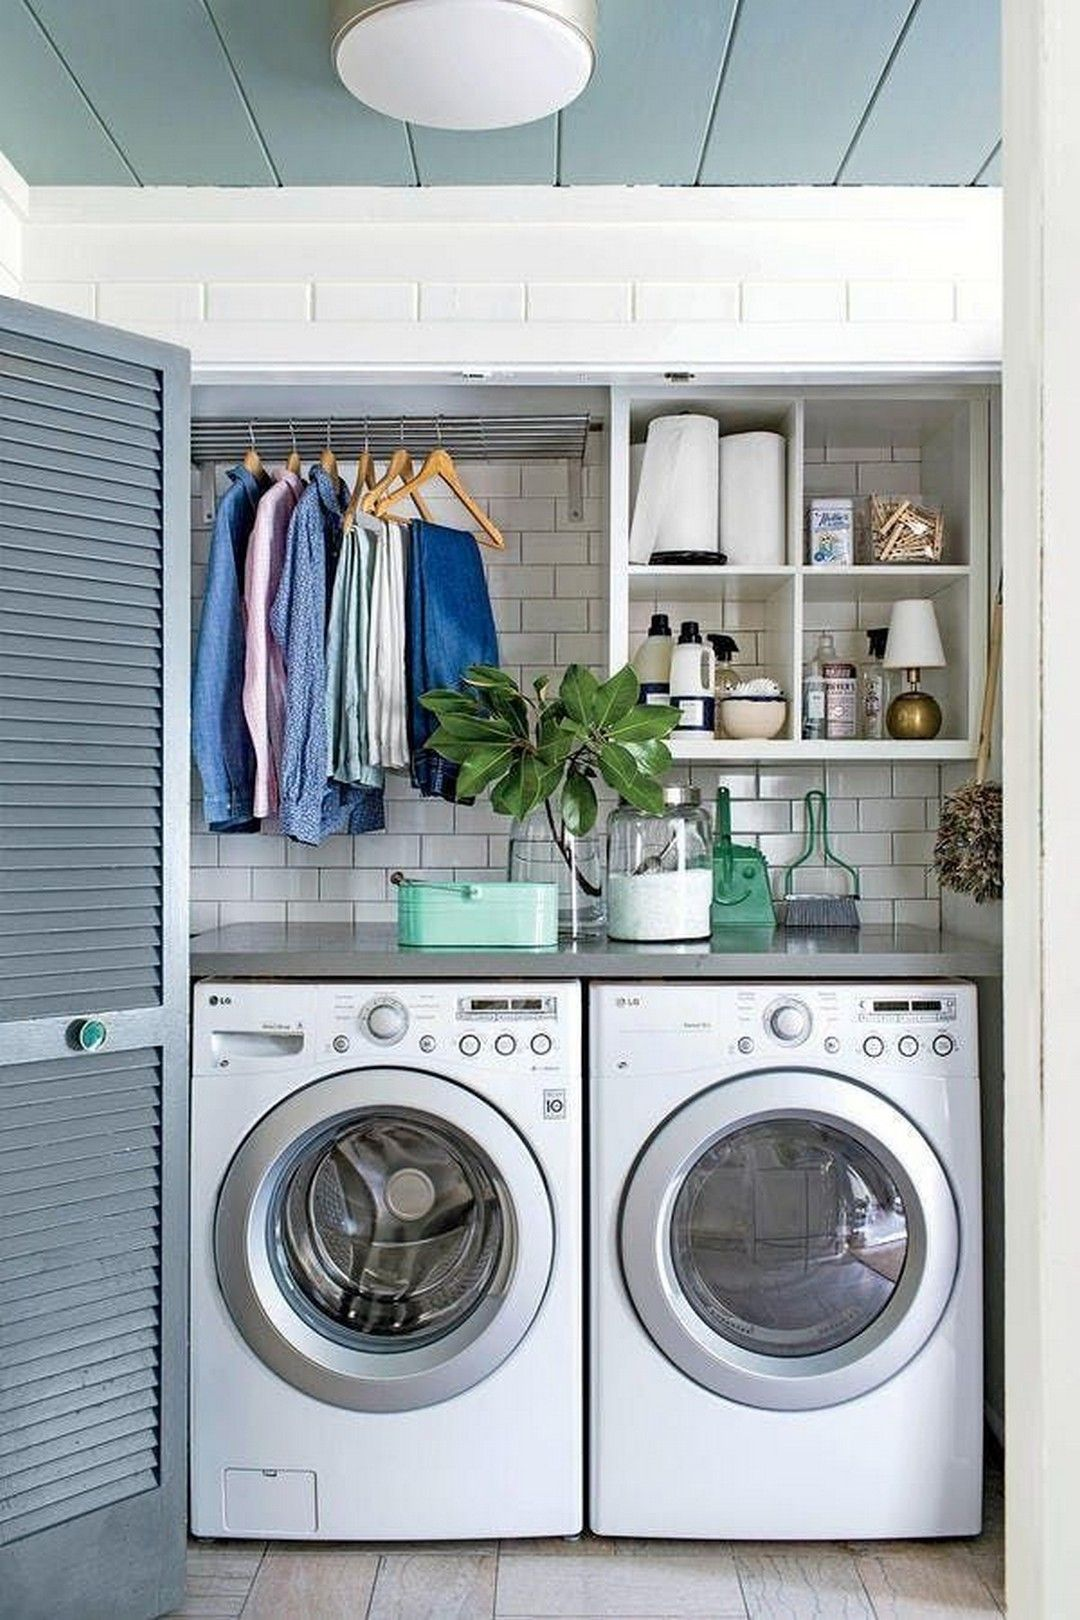 34 Easy Ways to Make a Small